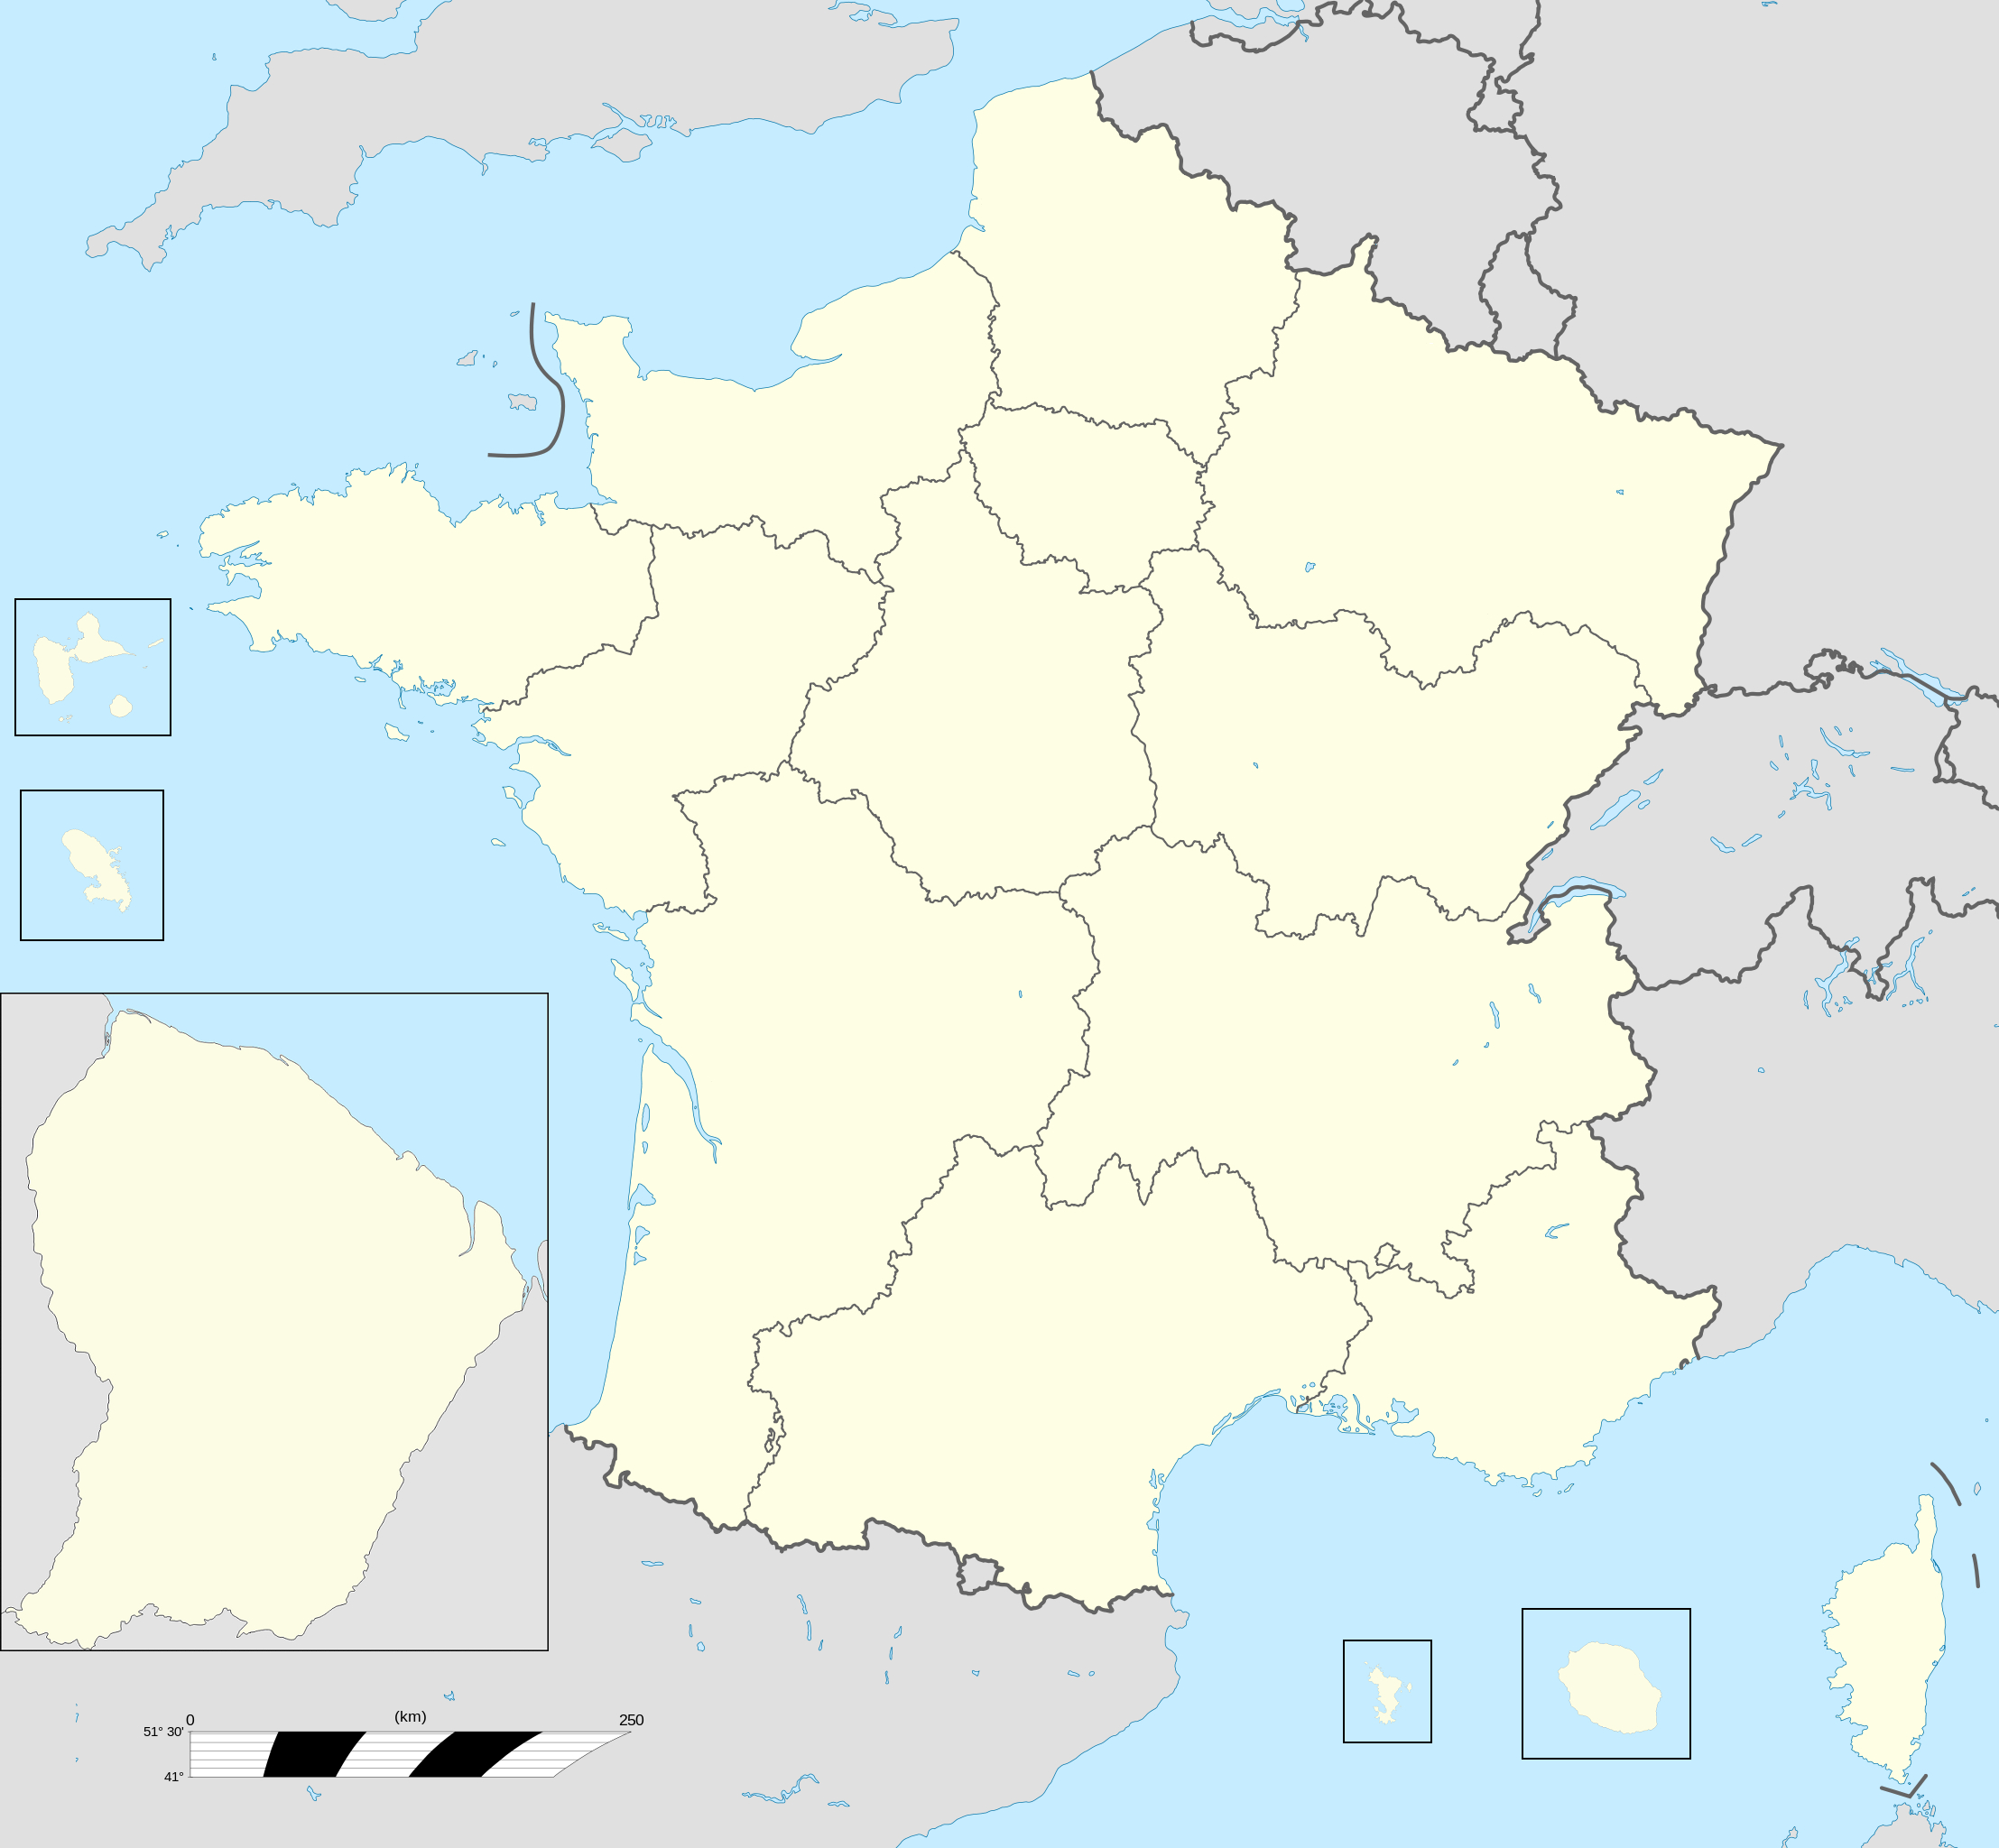 Ranked List Of French Regions - Wikipedia concernant Carte Des Régions De France 2016